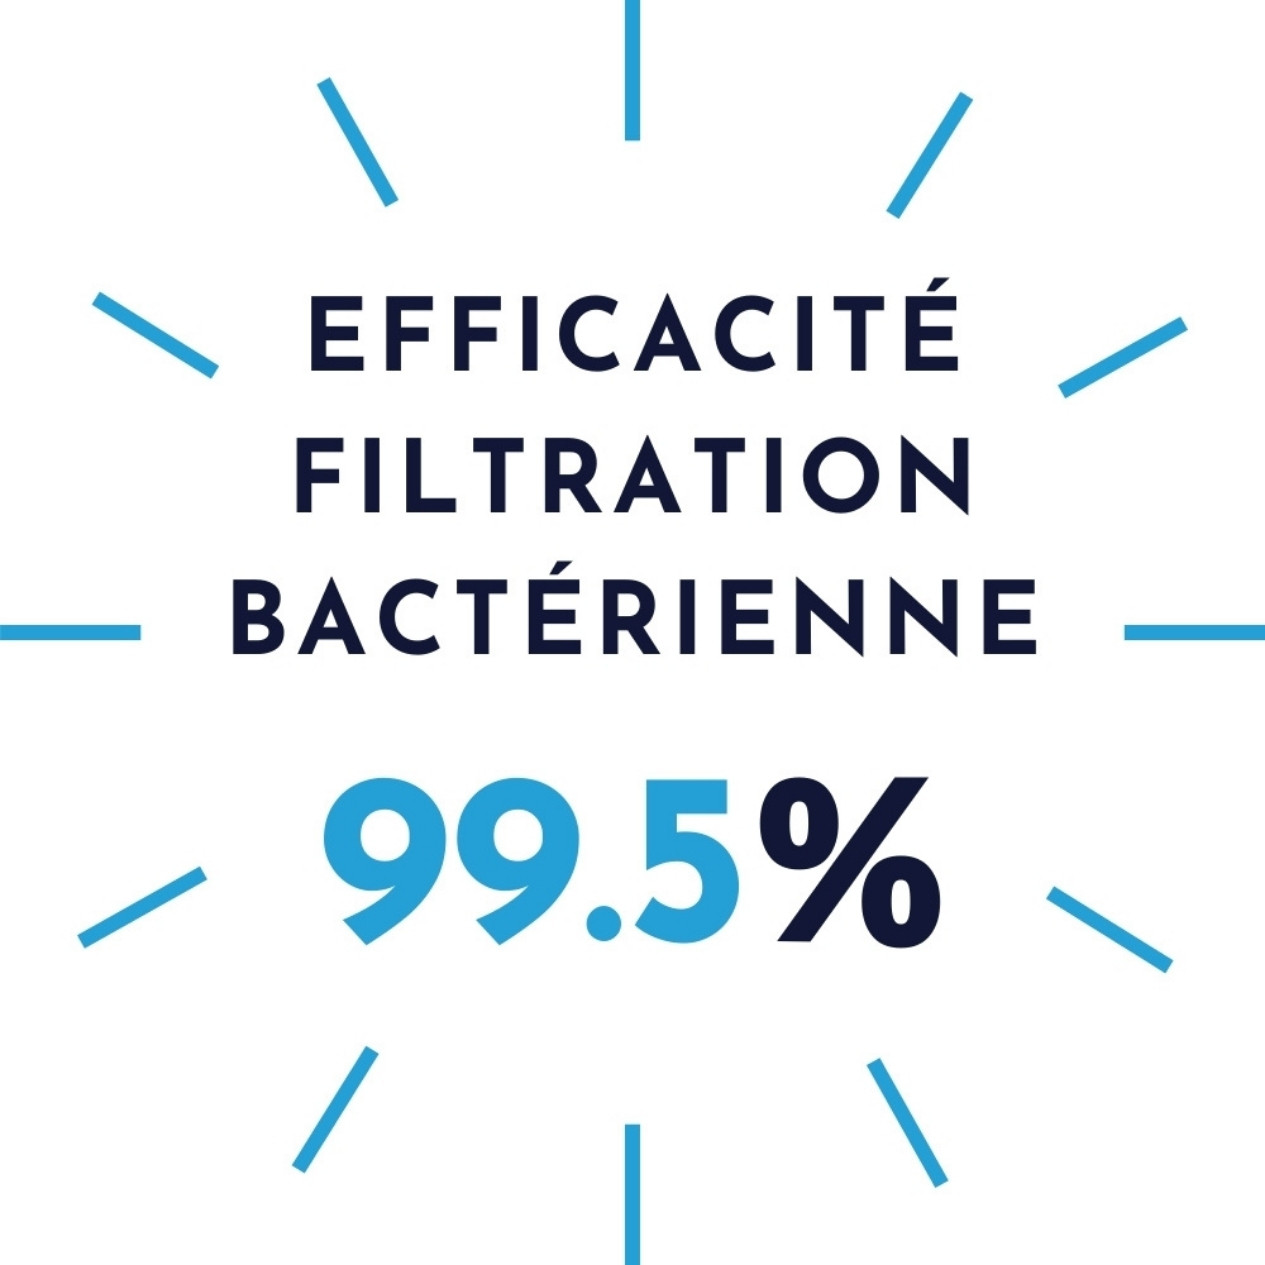 Masque Médical Covid-19 | Filtration 99.5%